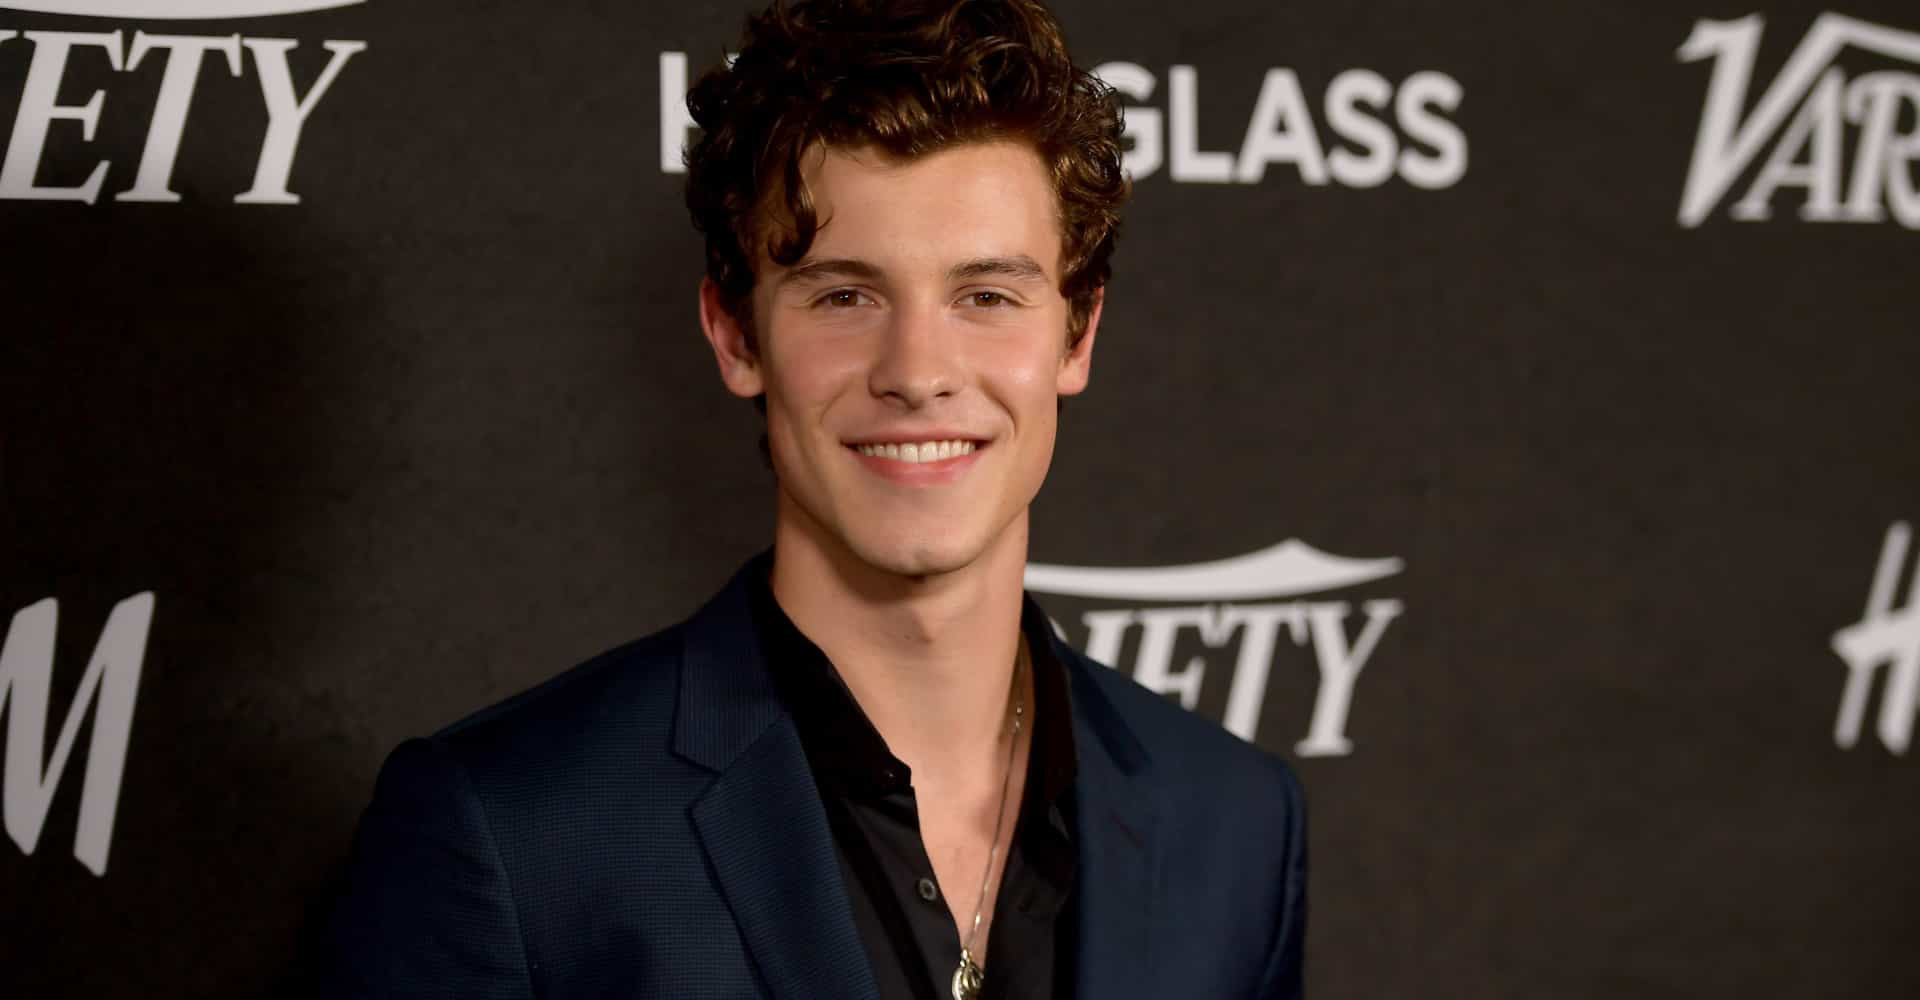 Shawn Mendes romances THIS secret star in 'Lost in Japan'